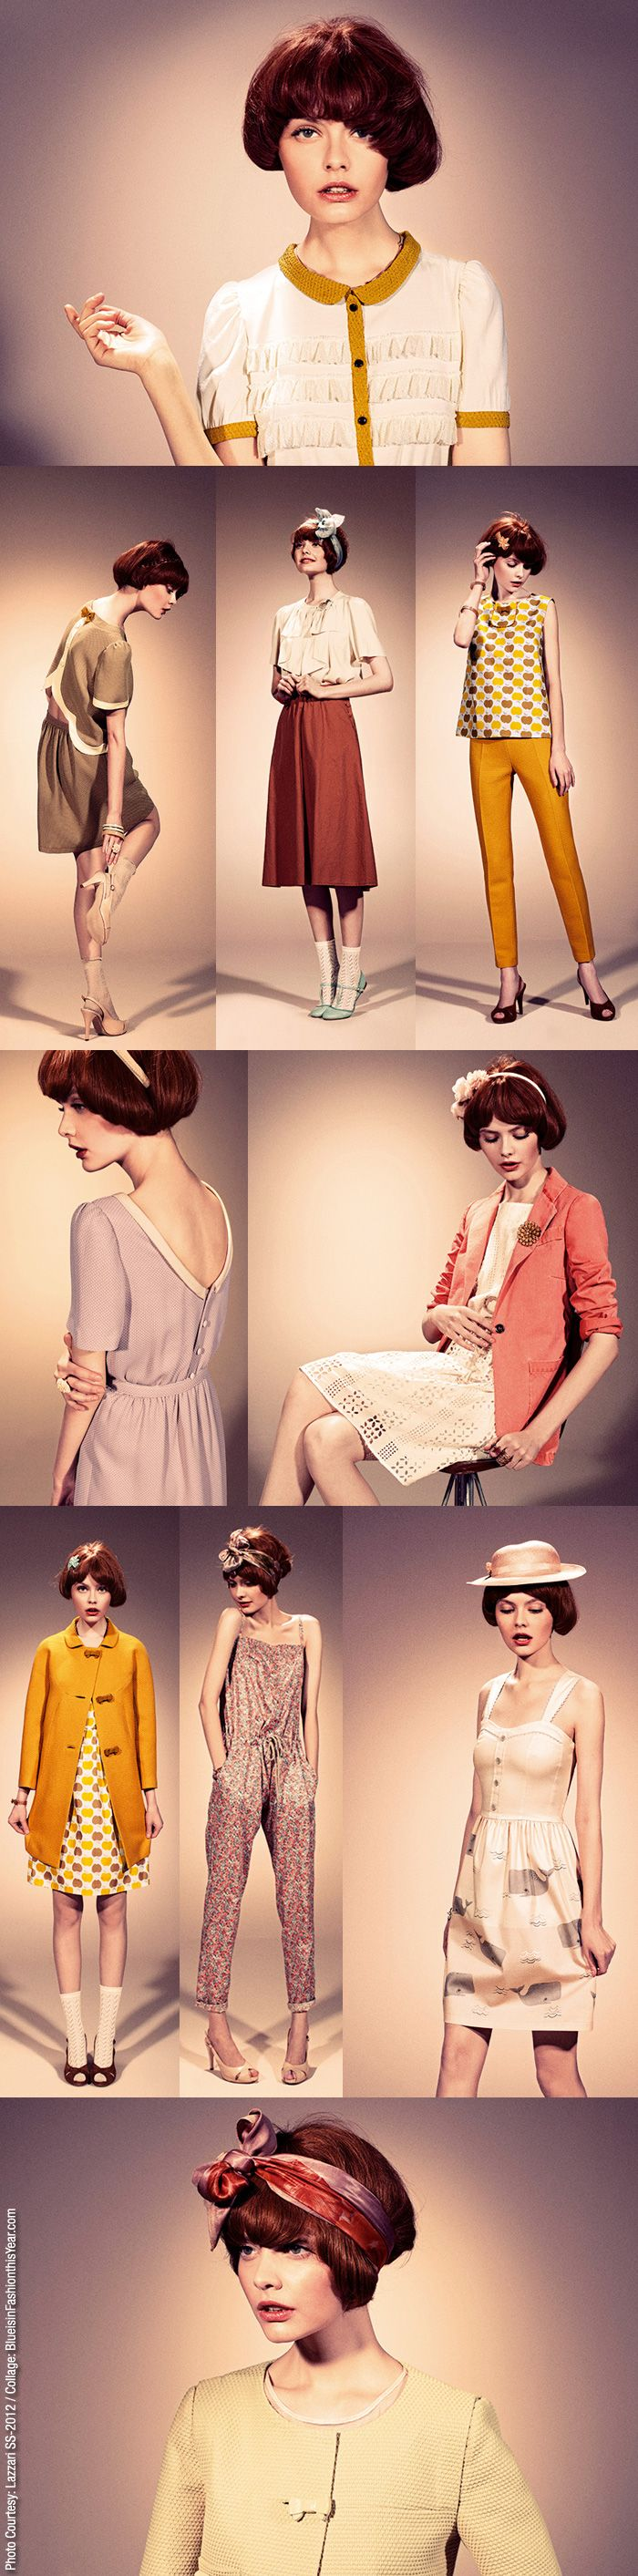 lazzari spring-summer 2012 : I am obsessed with every single look!